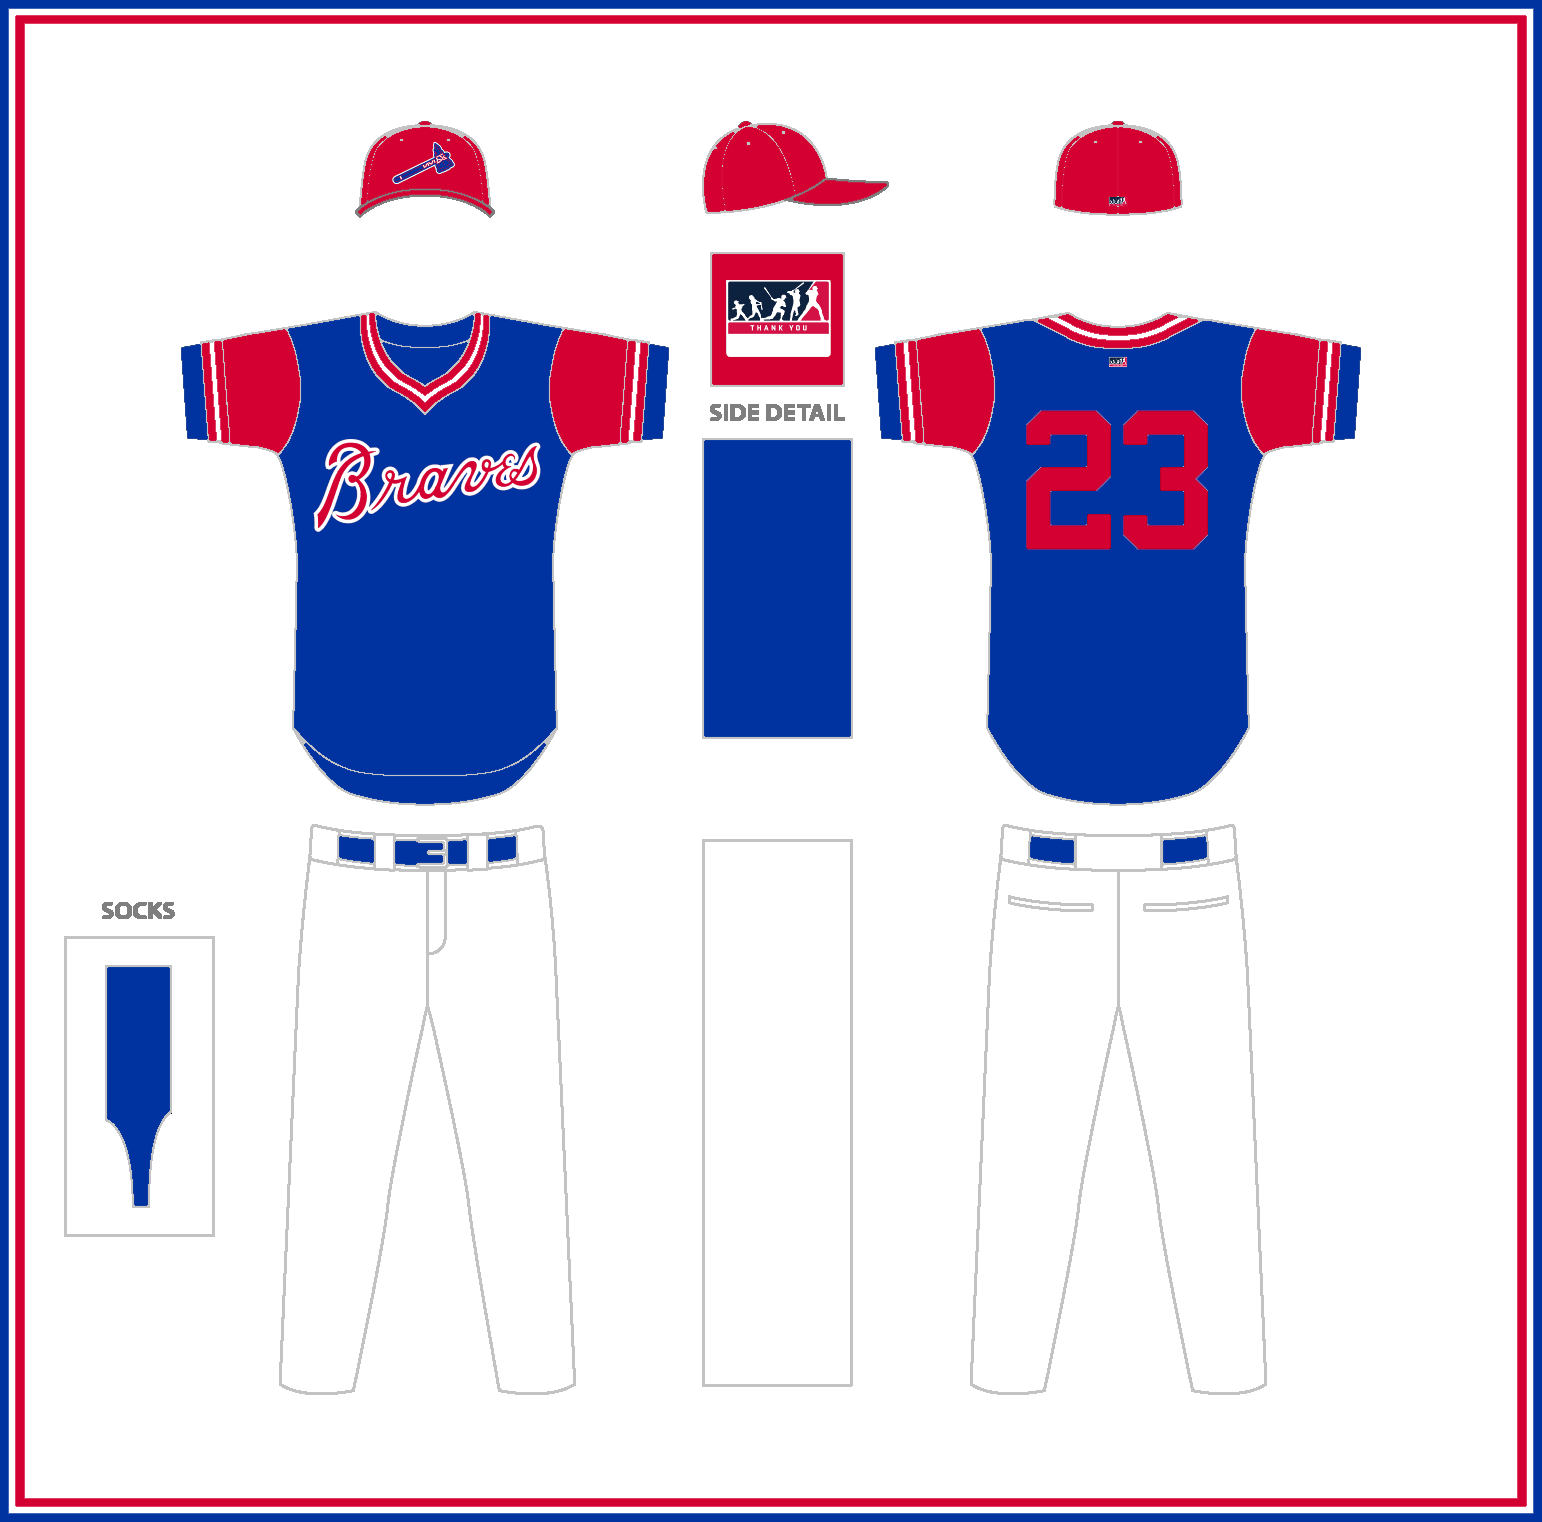 Braves_Players_Weekend.png